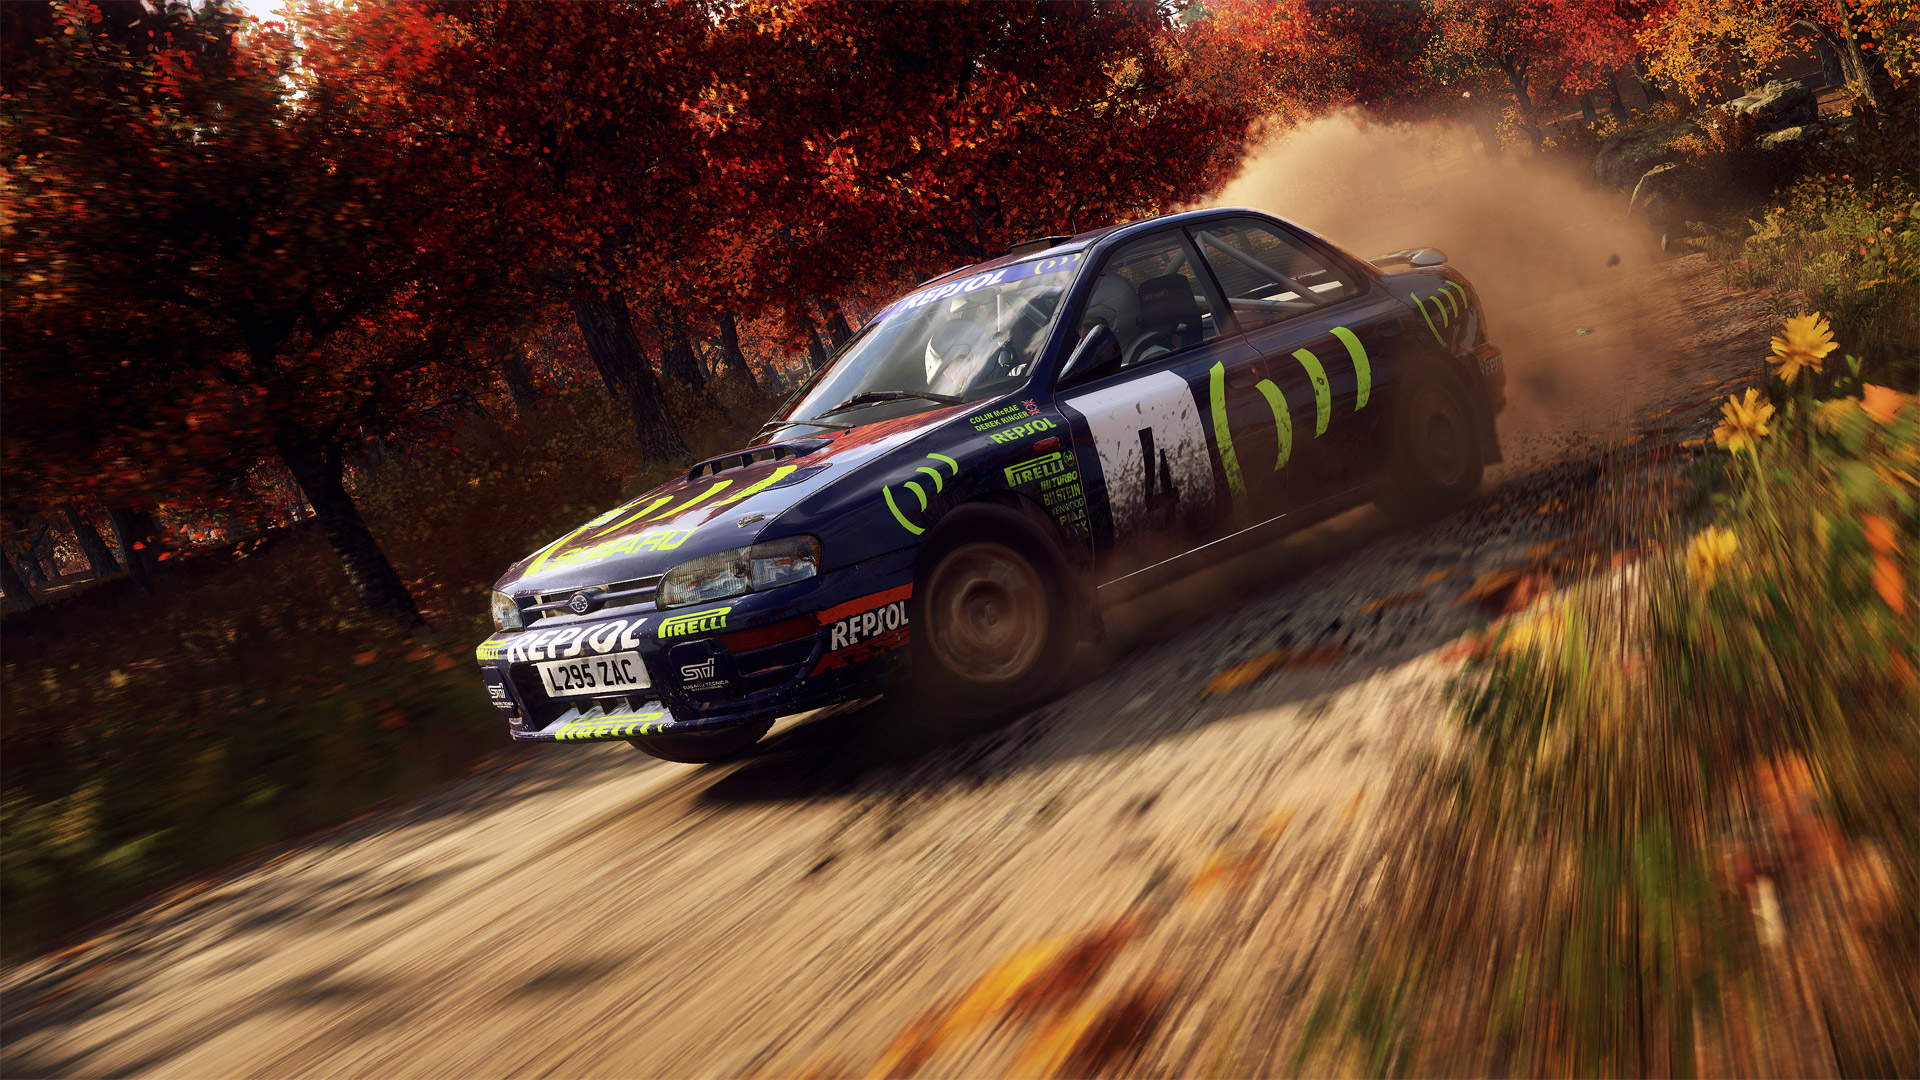 Dirt Rally 2.0 Wallpaper in 1920x1080